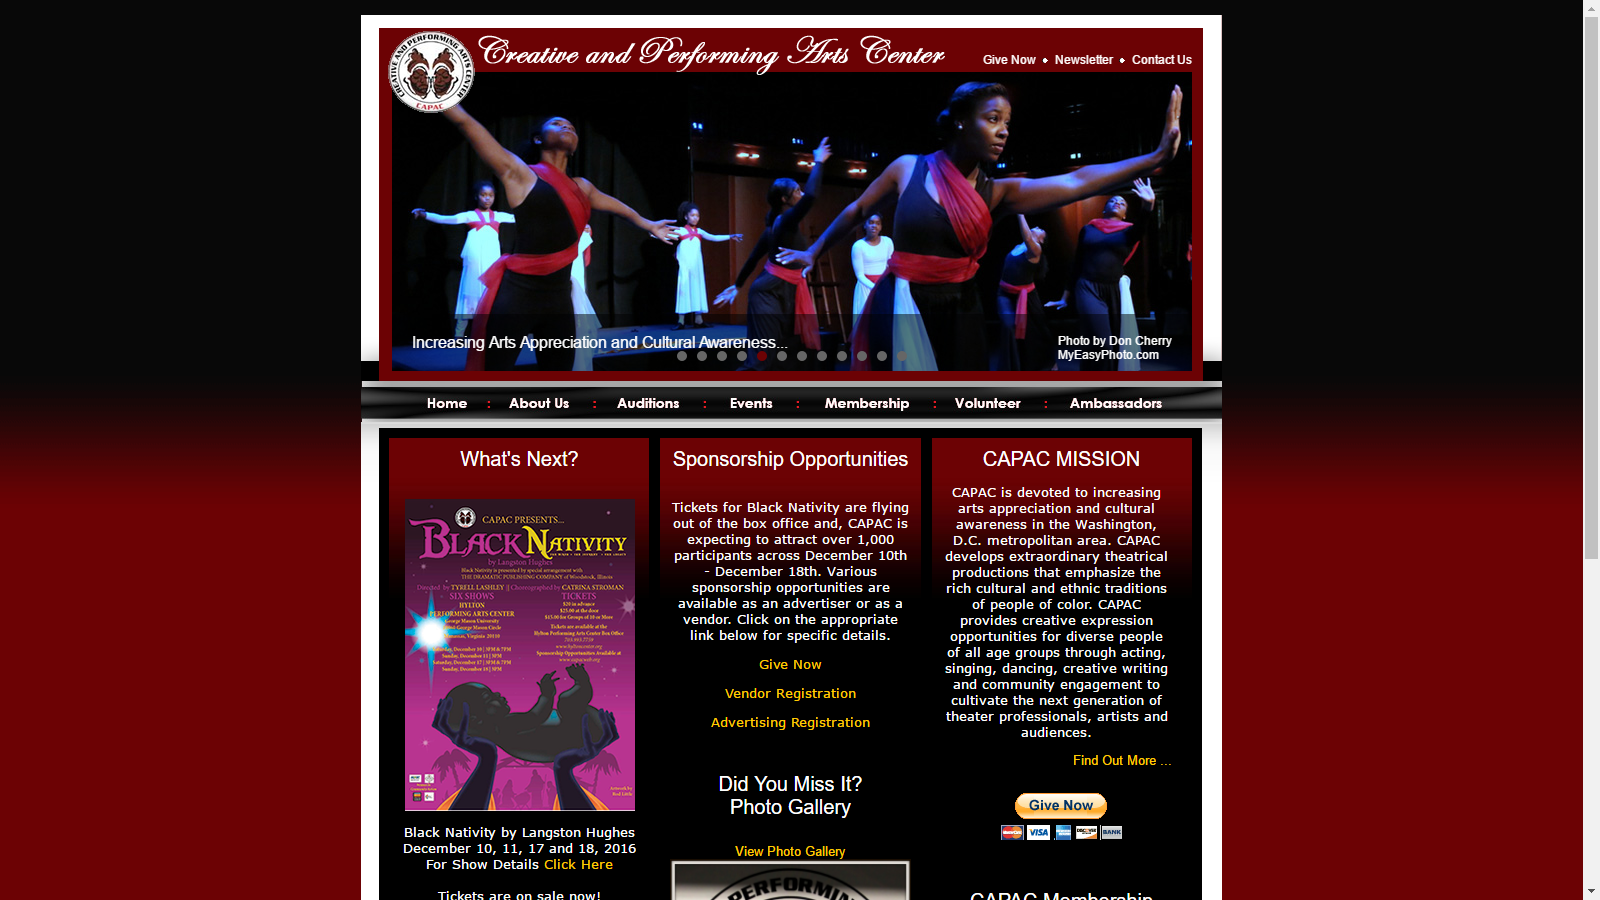 Creative and Performing Arts Center, Inc. Website